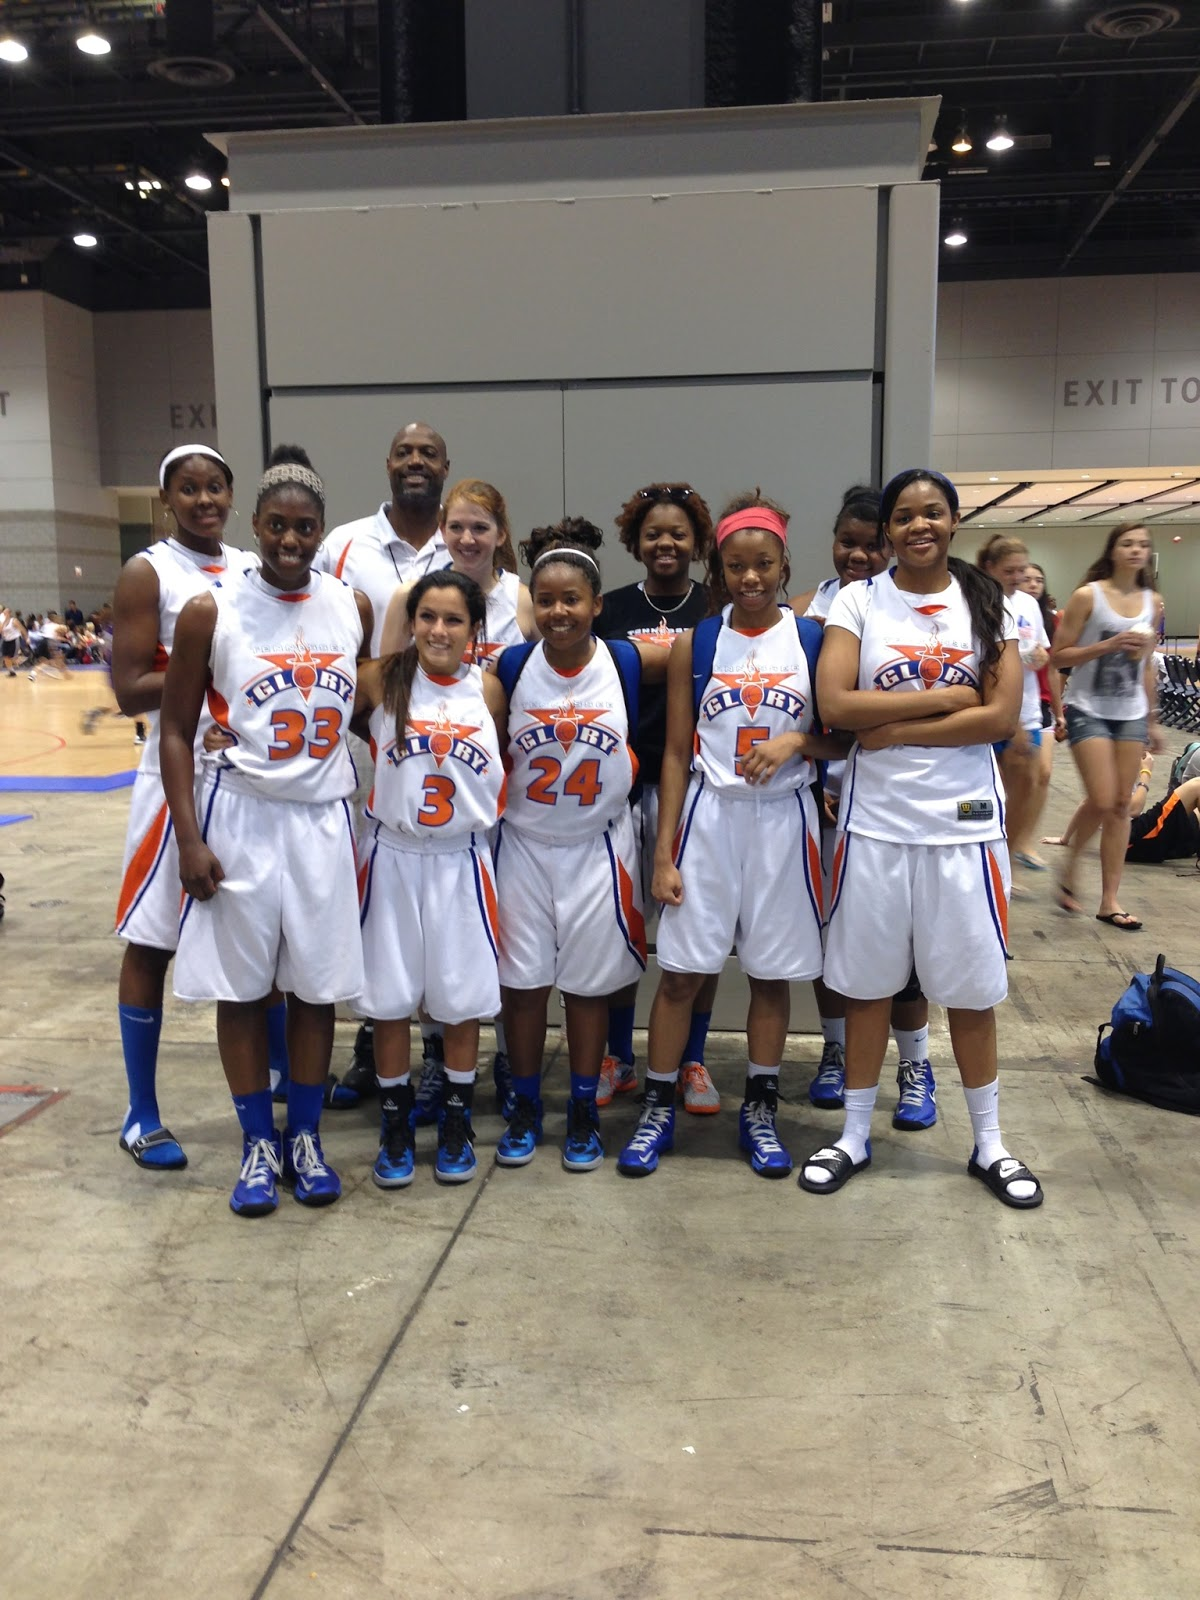 Tennessee Basketball Team Team Tennessee Glory 16u